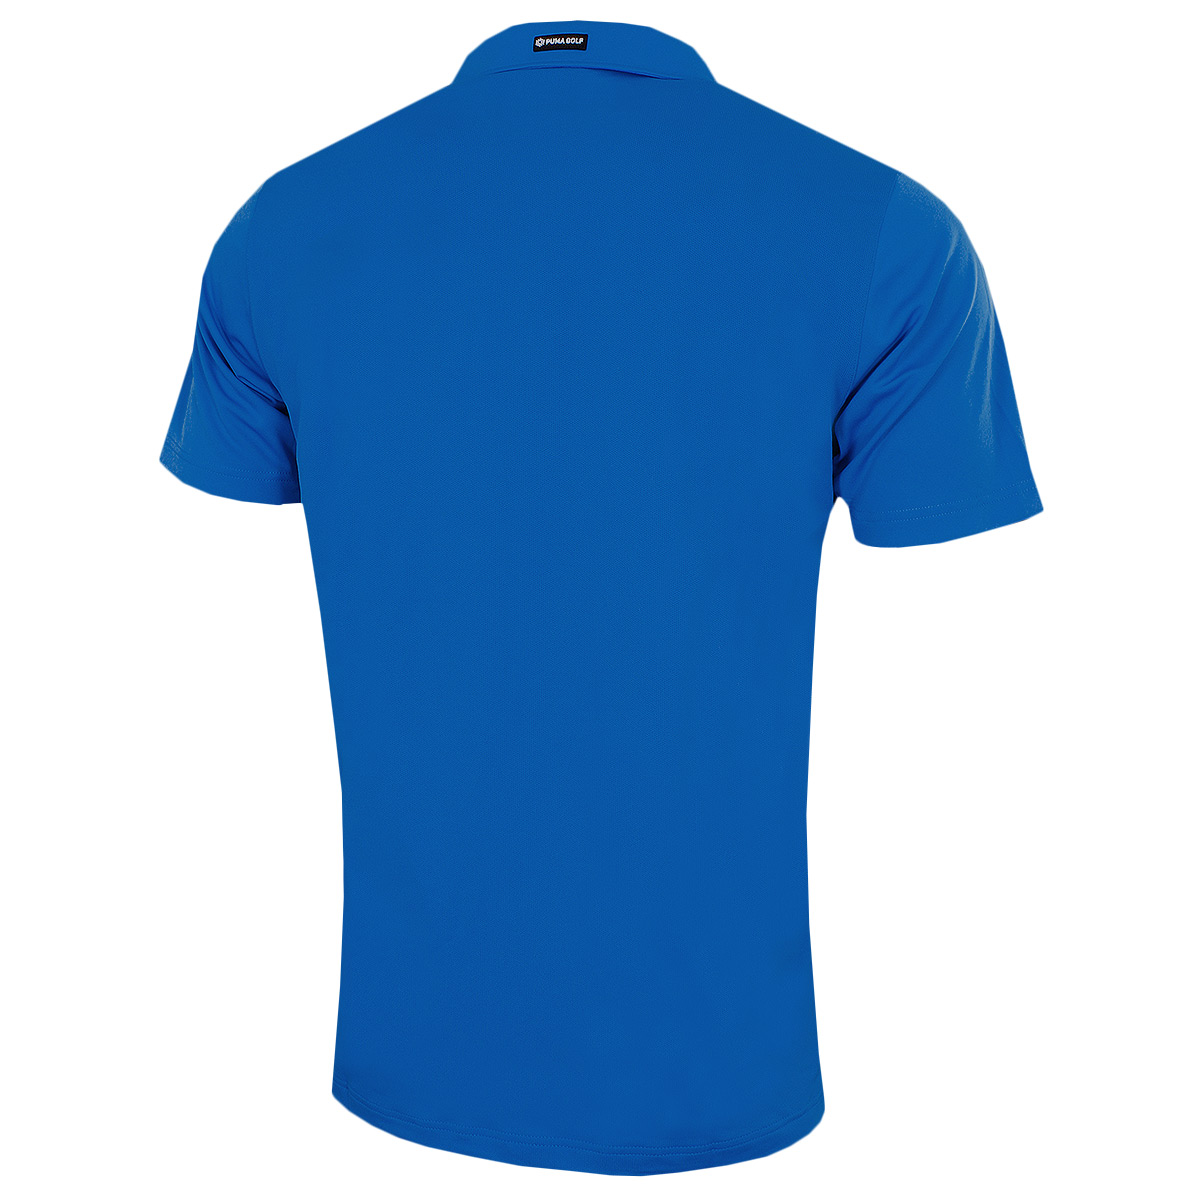 Puma-Golf-Mens-Essential-Pounce-Polo-Shirt-DryCell-Lightweight-Tech-43-OFF-RRP thumbnail 33